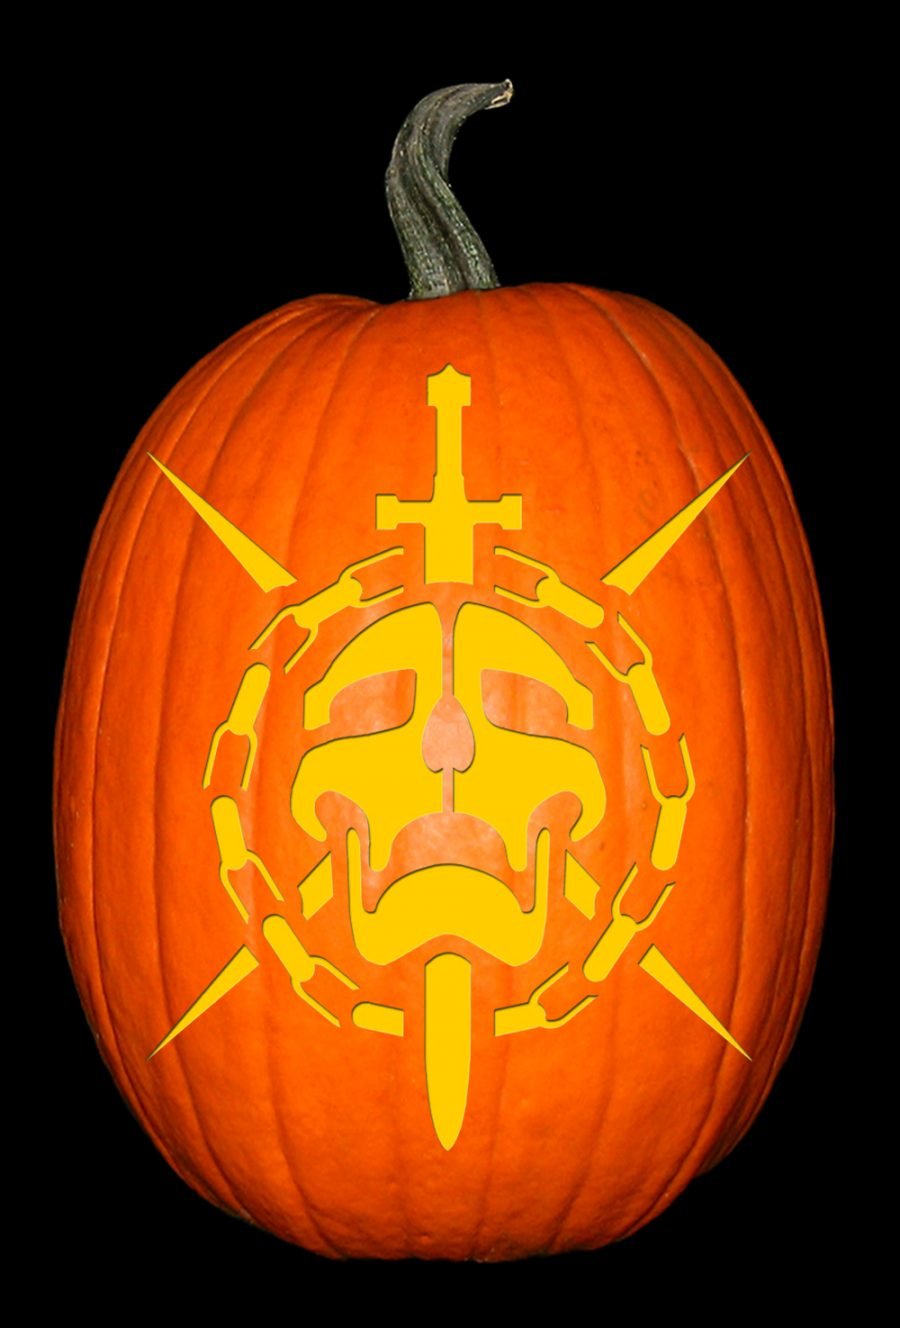 Destiny 2 - Raids Pumpkin